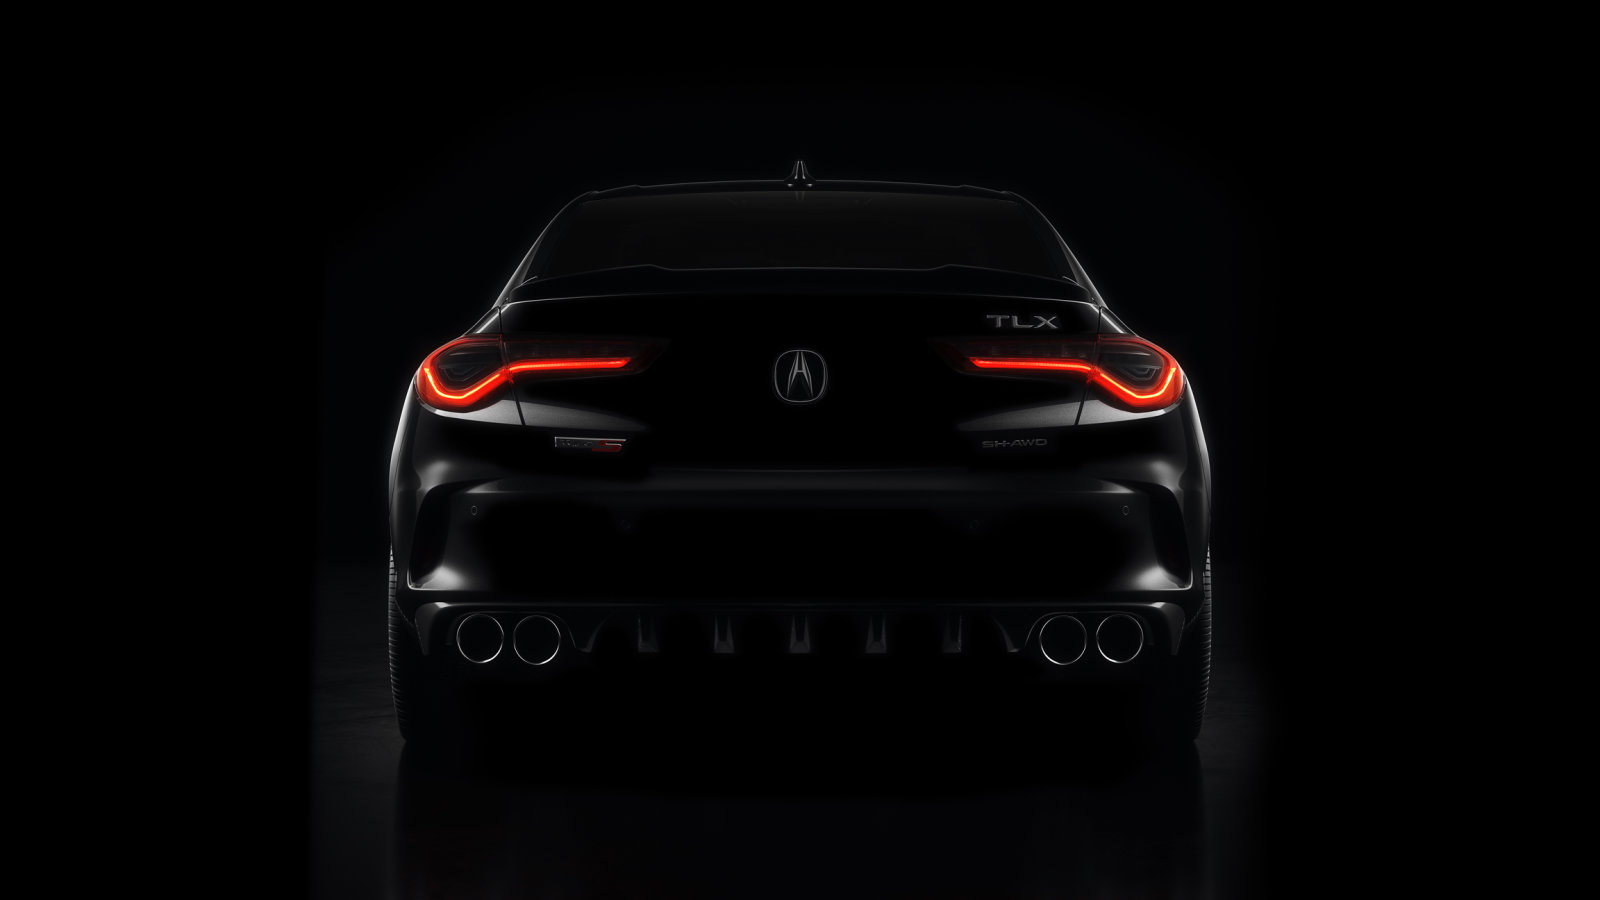 2021 Acura TLX Type S to get turbo V6 debuts May 28 Autoblog 1600x900